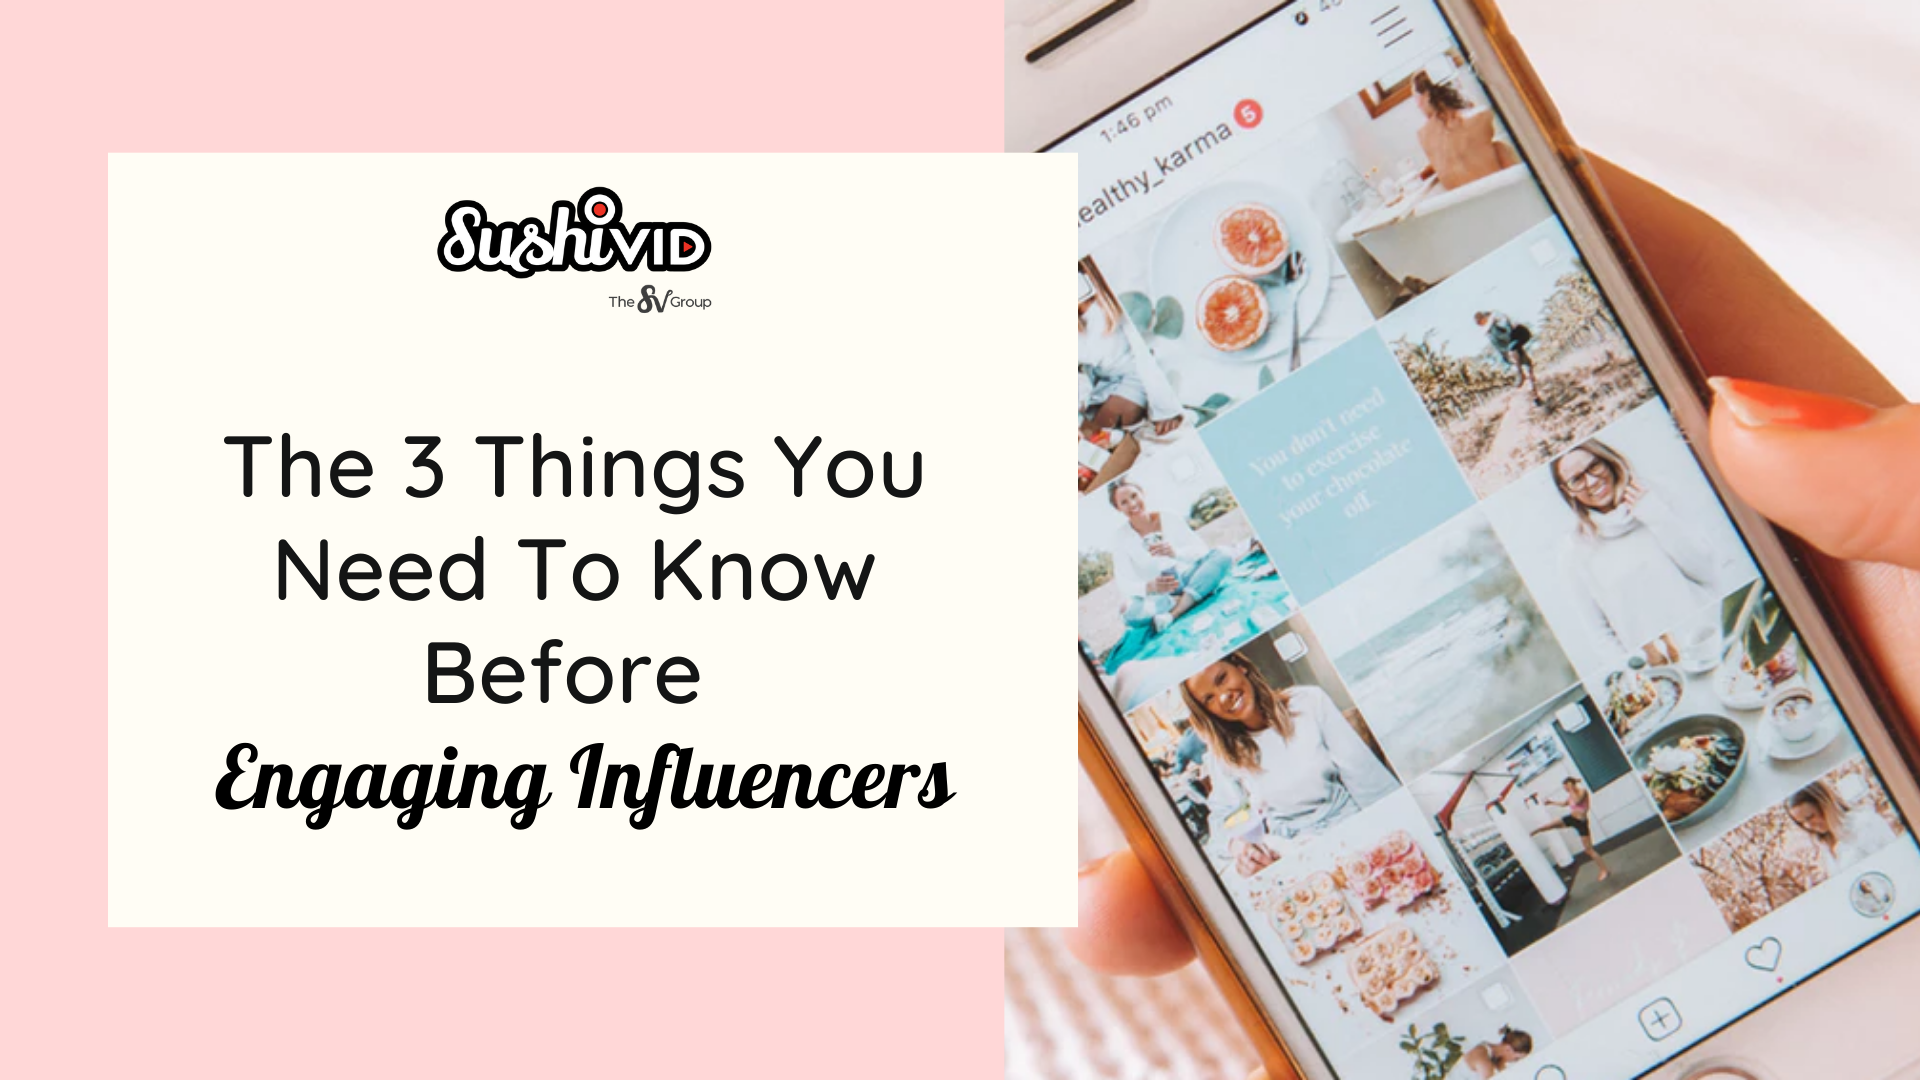 The 3 Things That You Need To Know Before Engaging Influencers